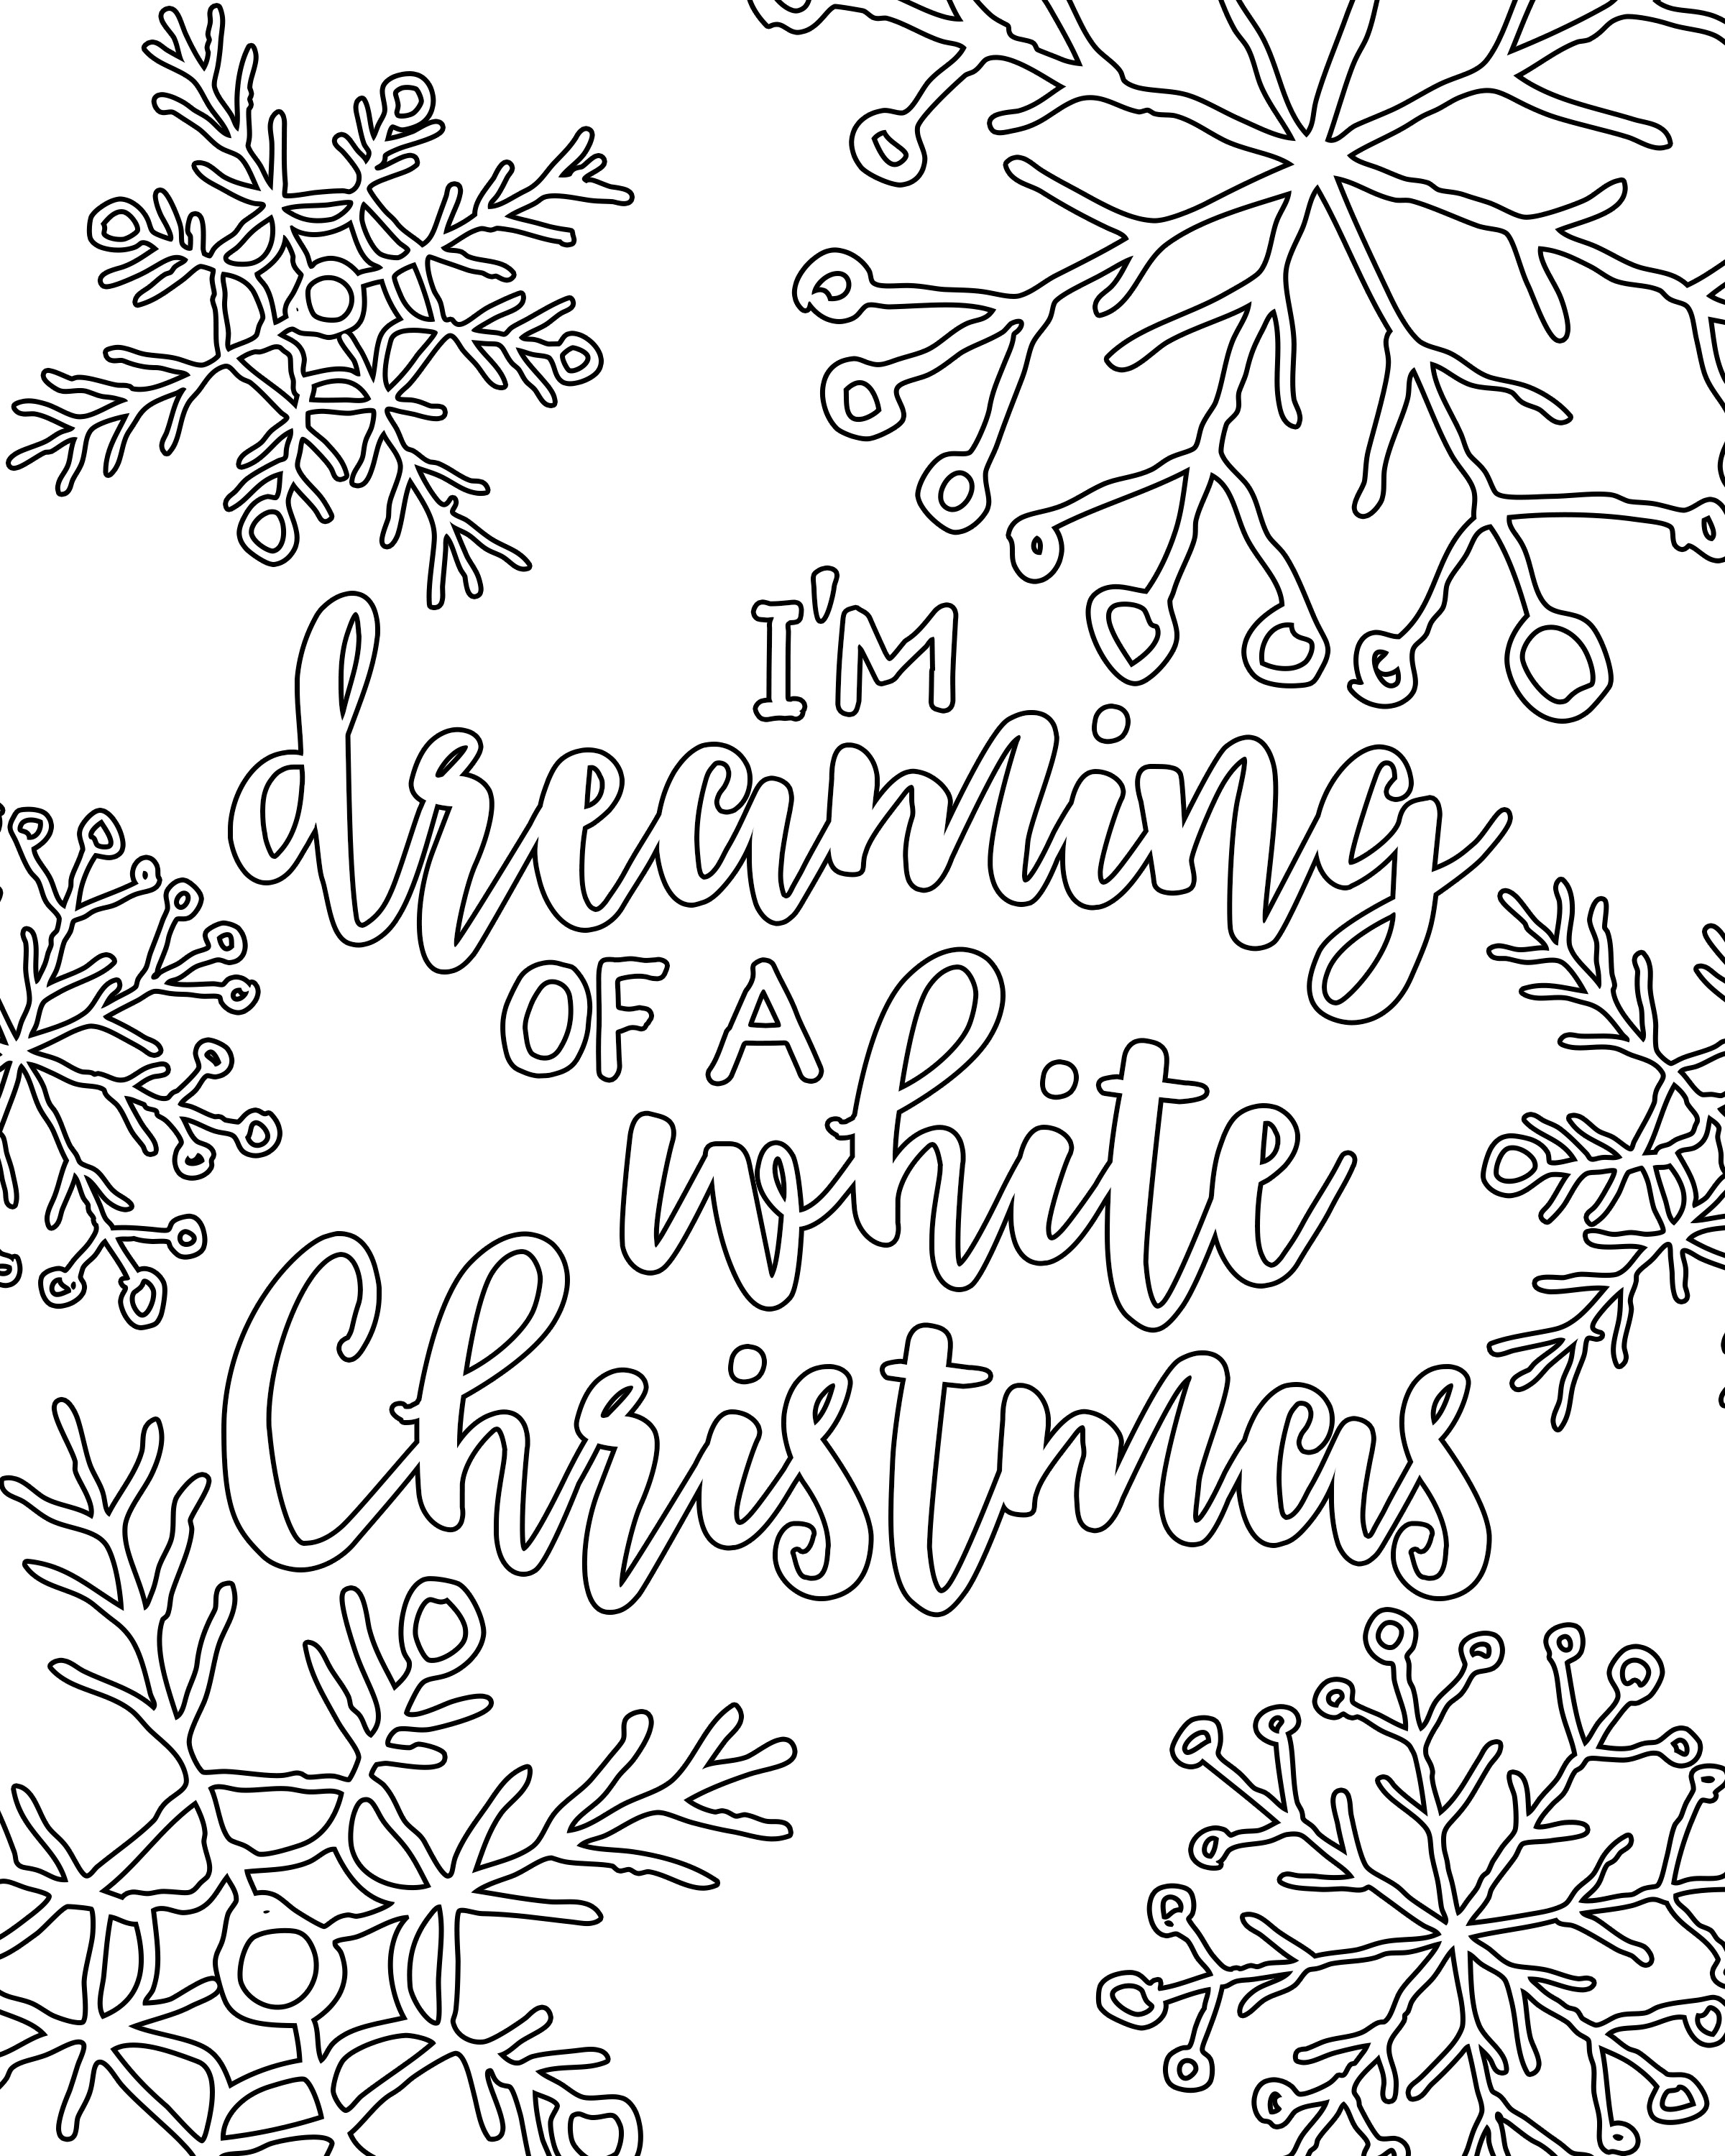 Christmas Coloring In Pictures With Free Printable White Adult Pages Our